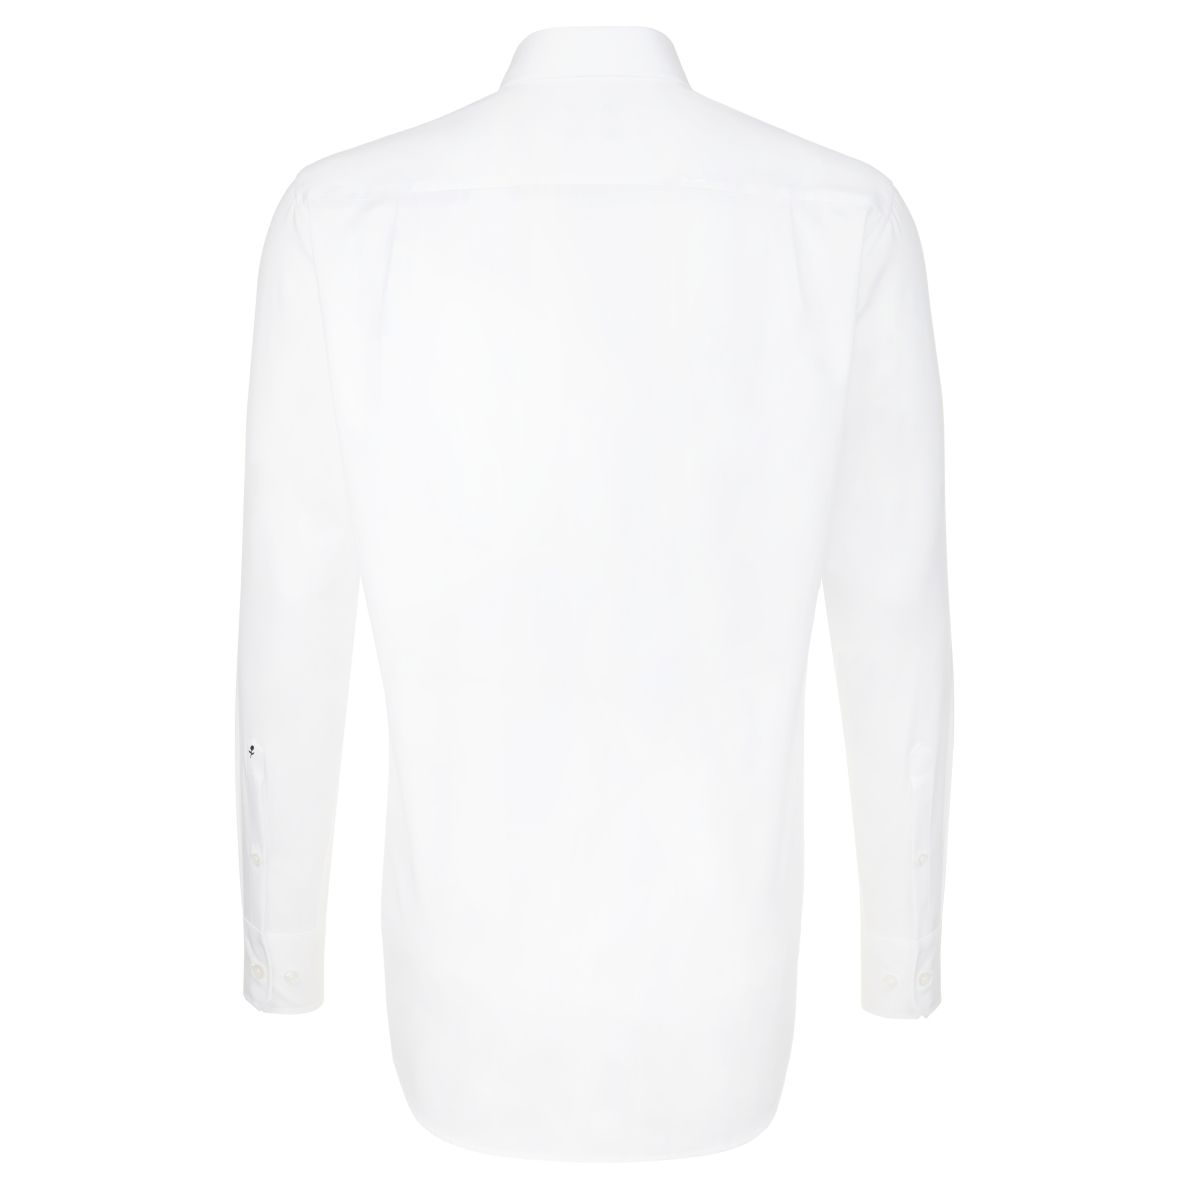 Chemise MODERN blanche manches extra-courtes